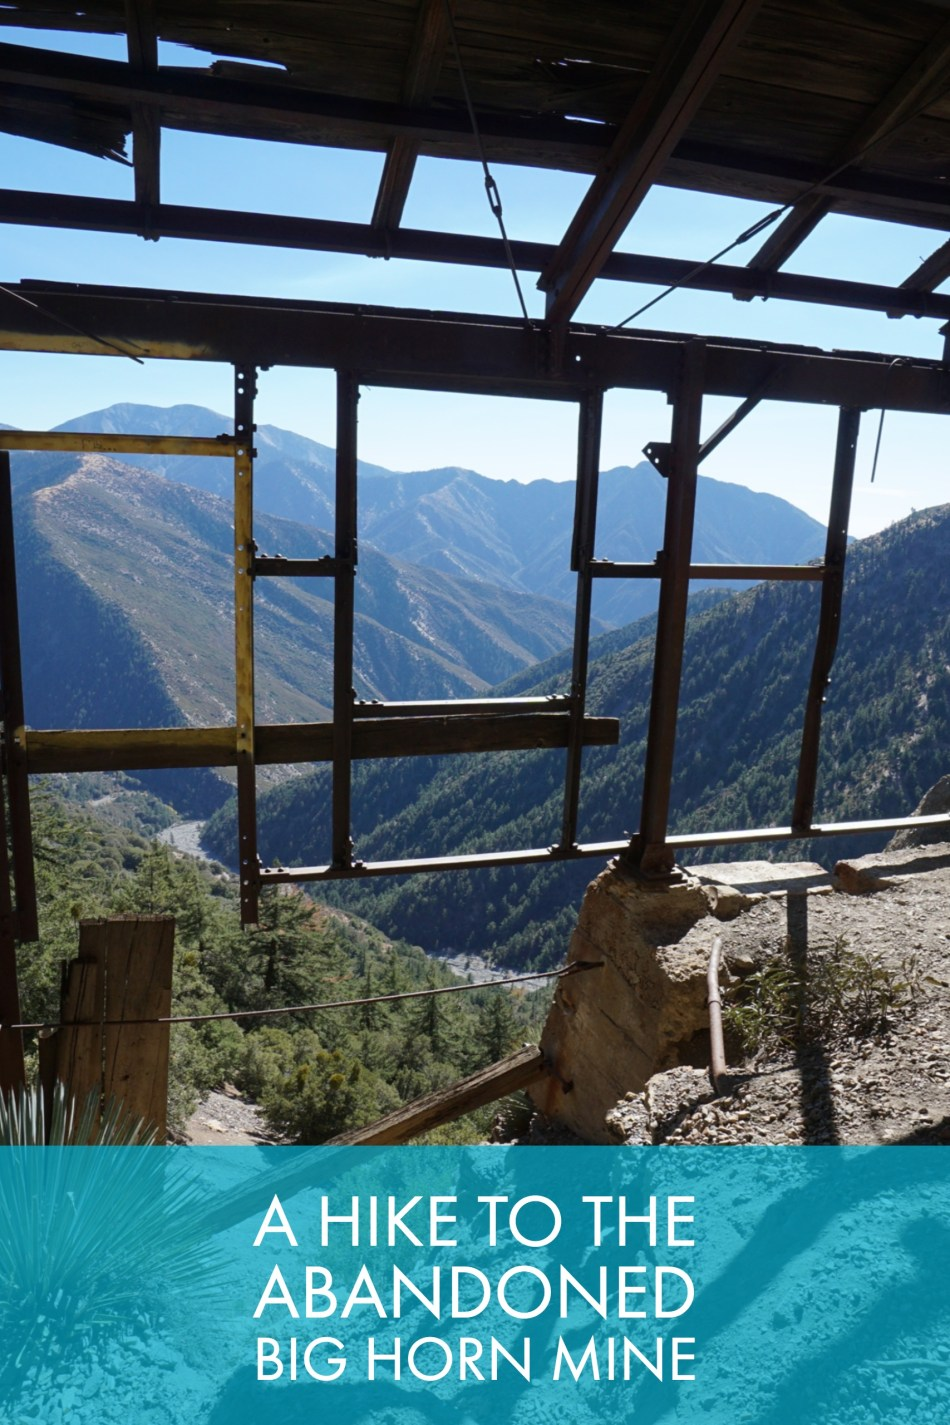 Hiking to the abandoned Bighorn Mine